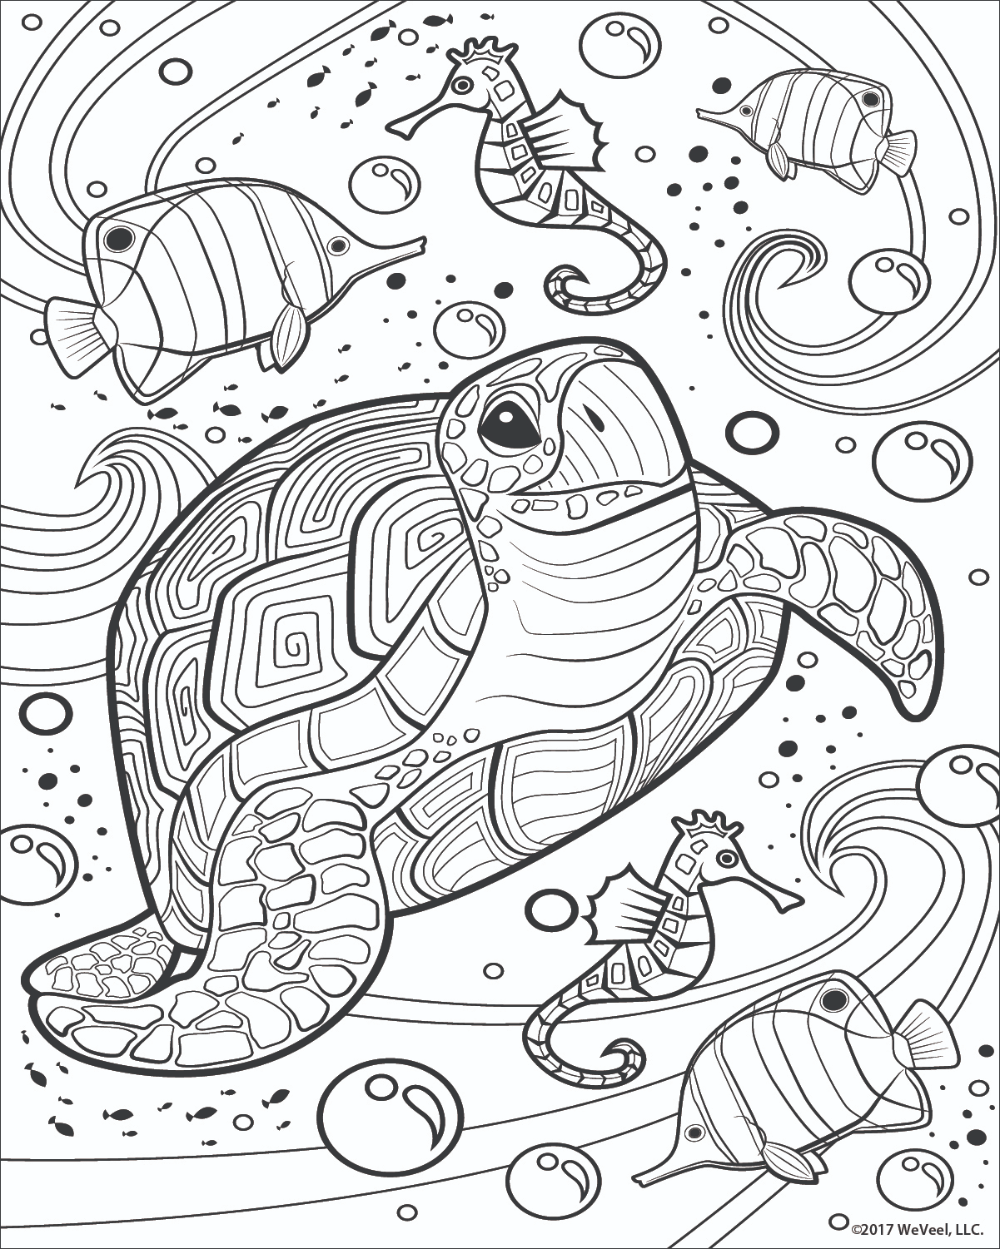 Coloring Pages Scentos Cute Coloring Pages Mermaid Coloring Pages Summer Coloring Pages [ 1249 x 1000 Pixel ]